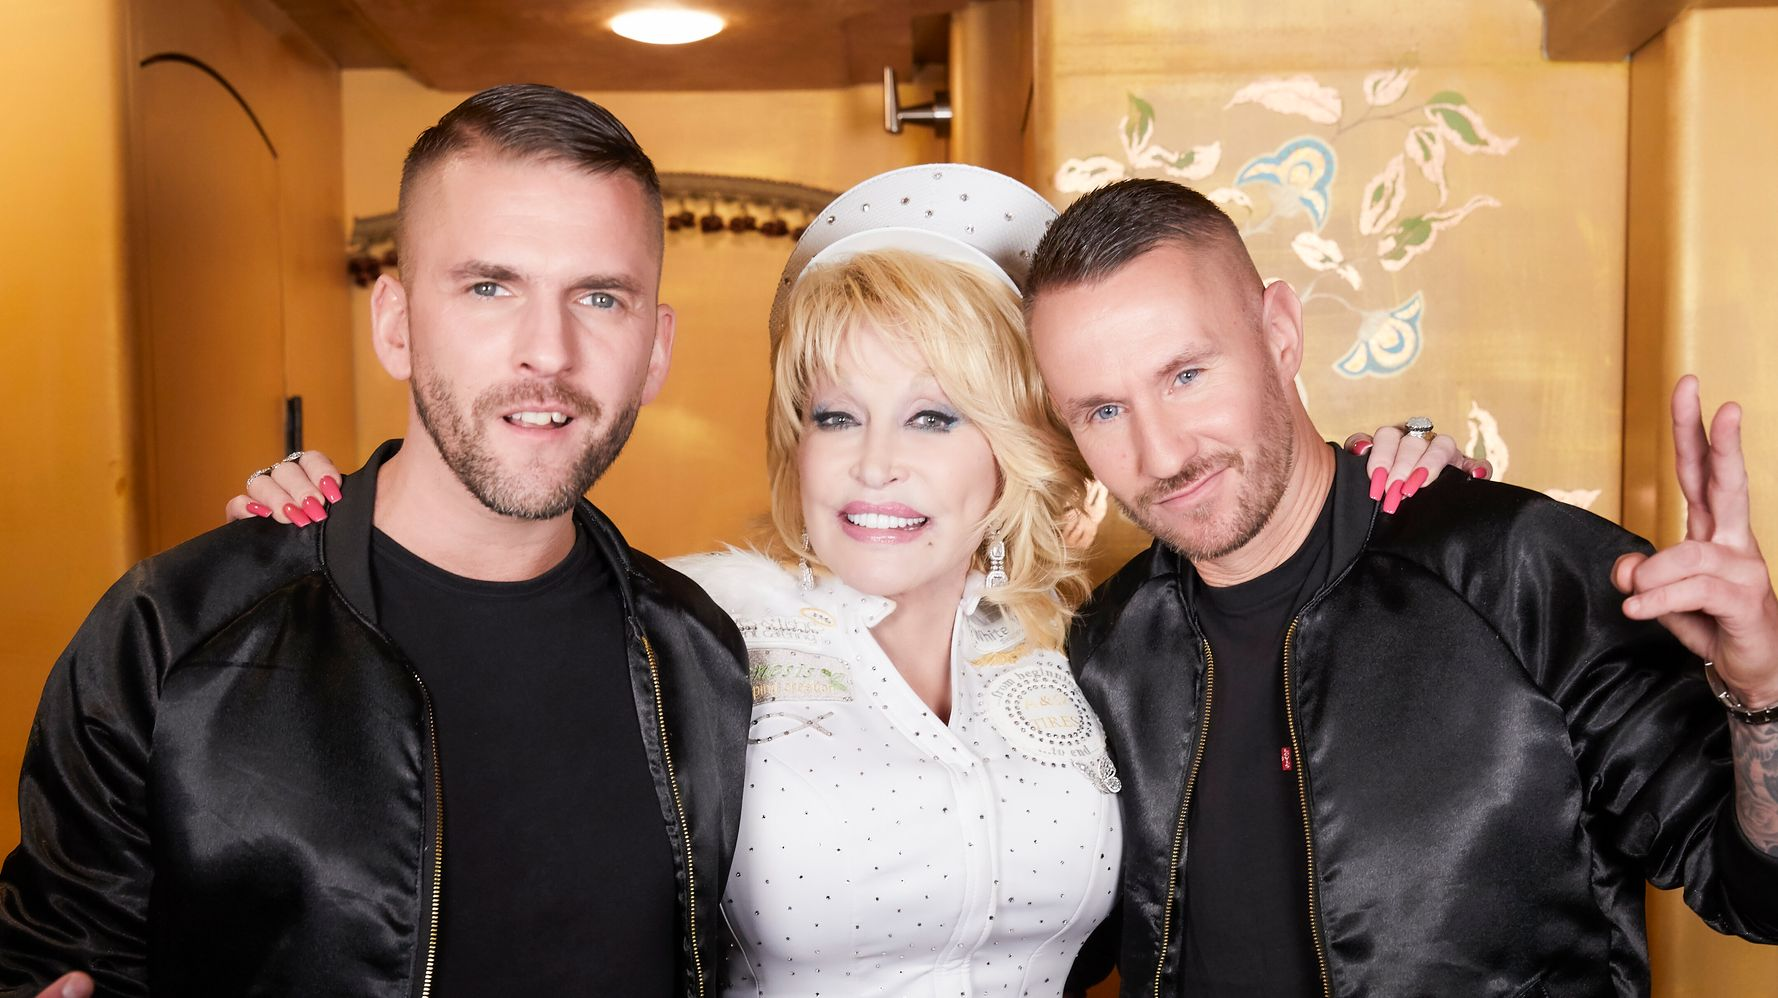 Dolly Parton Goes Full-On Dance Diva In New Song With Galantis thumbnail